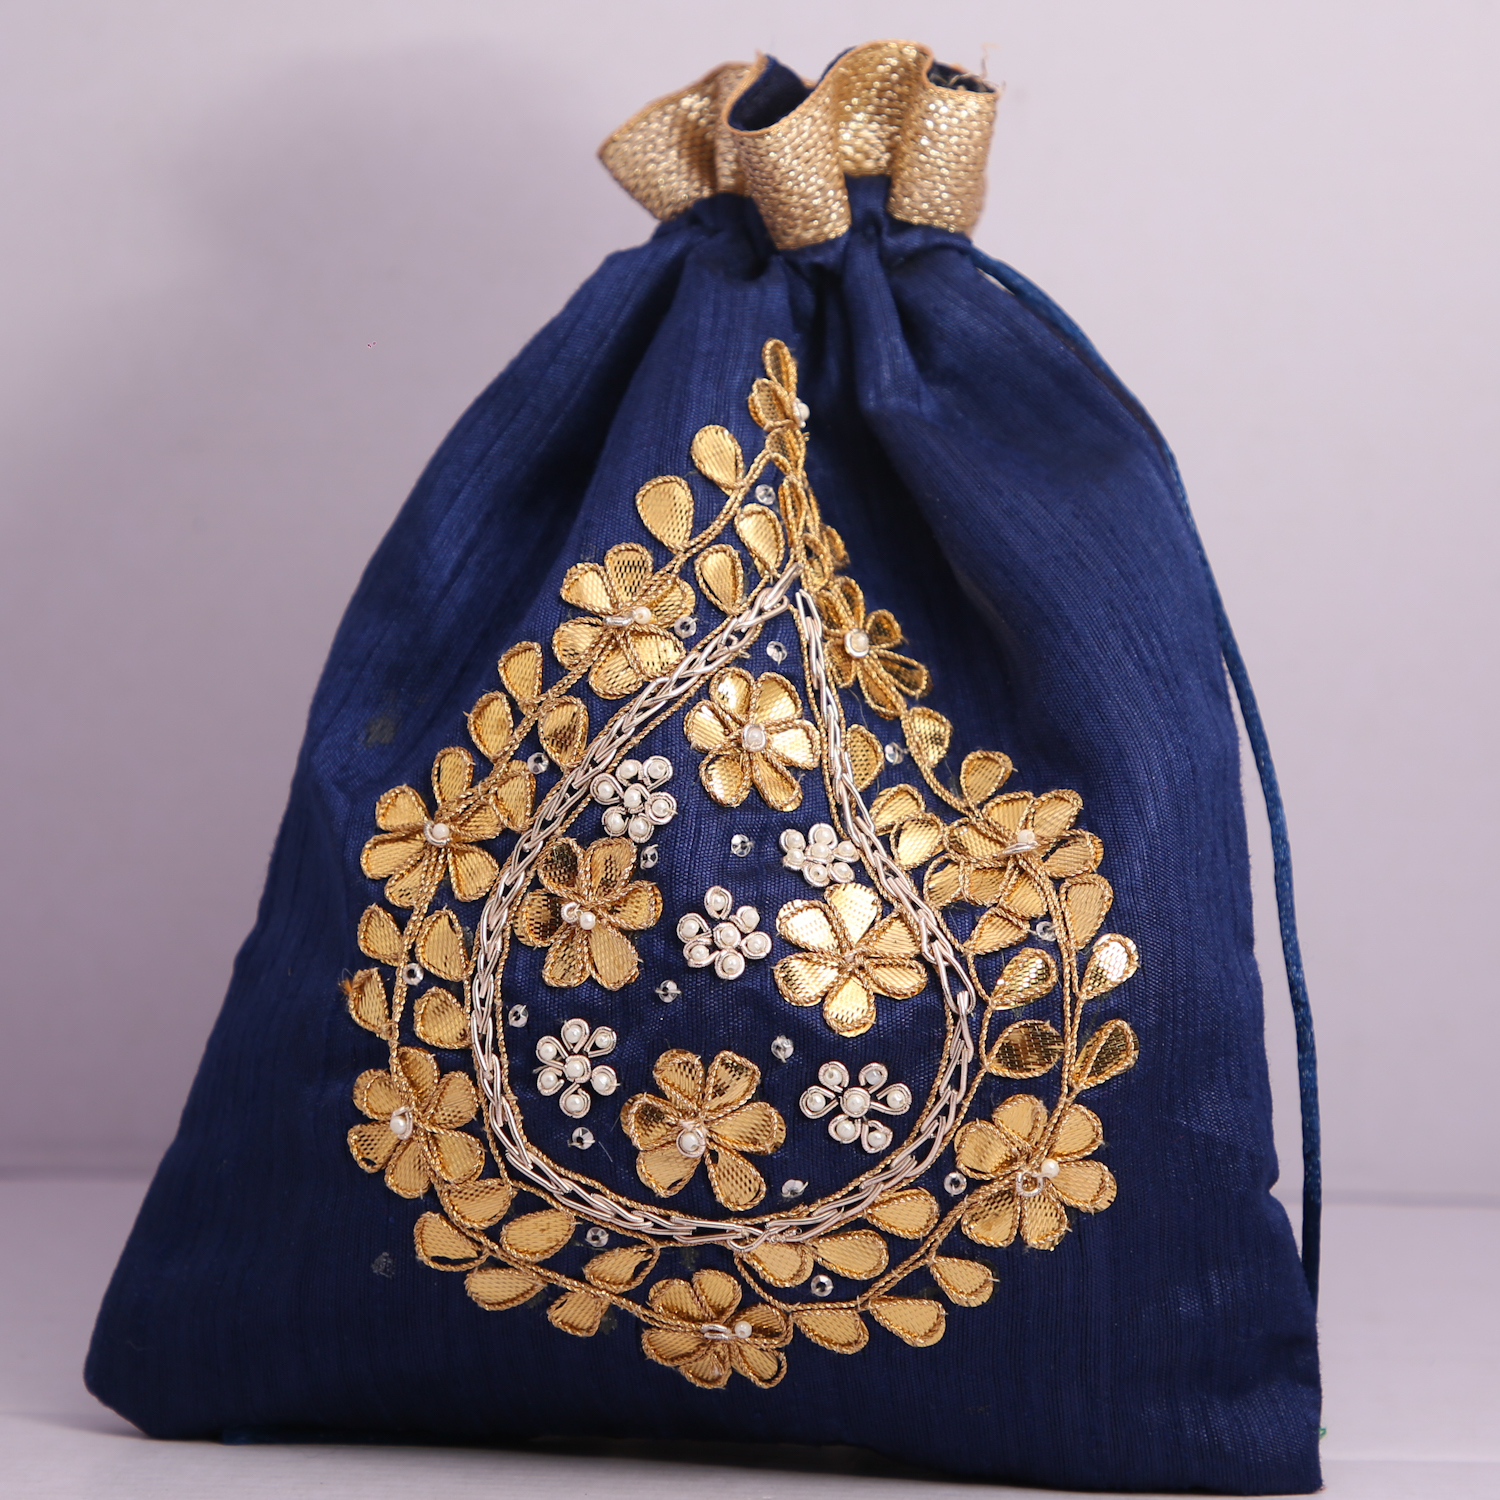 2.Wedding Hand Crafted Potli Bag With Beaded Chain For Women|| Evening Bags|| Embroidery Handbag